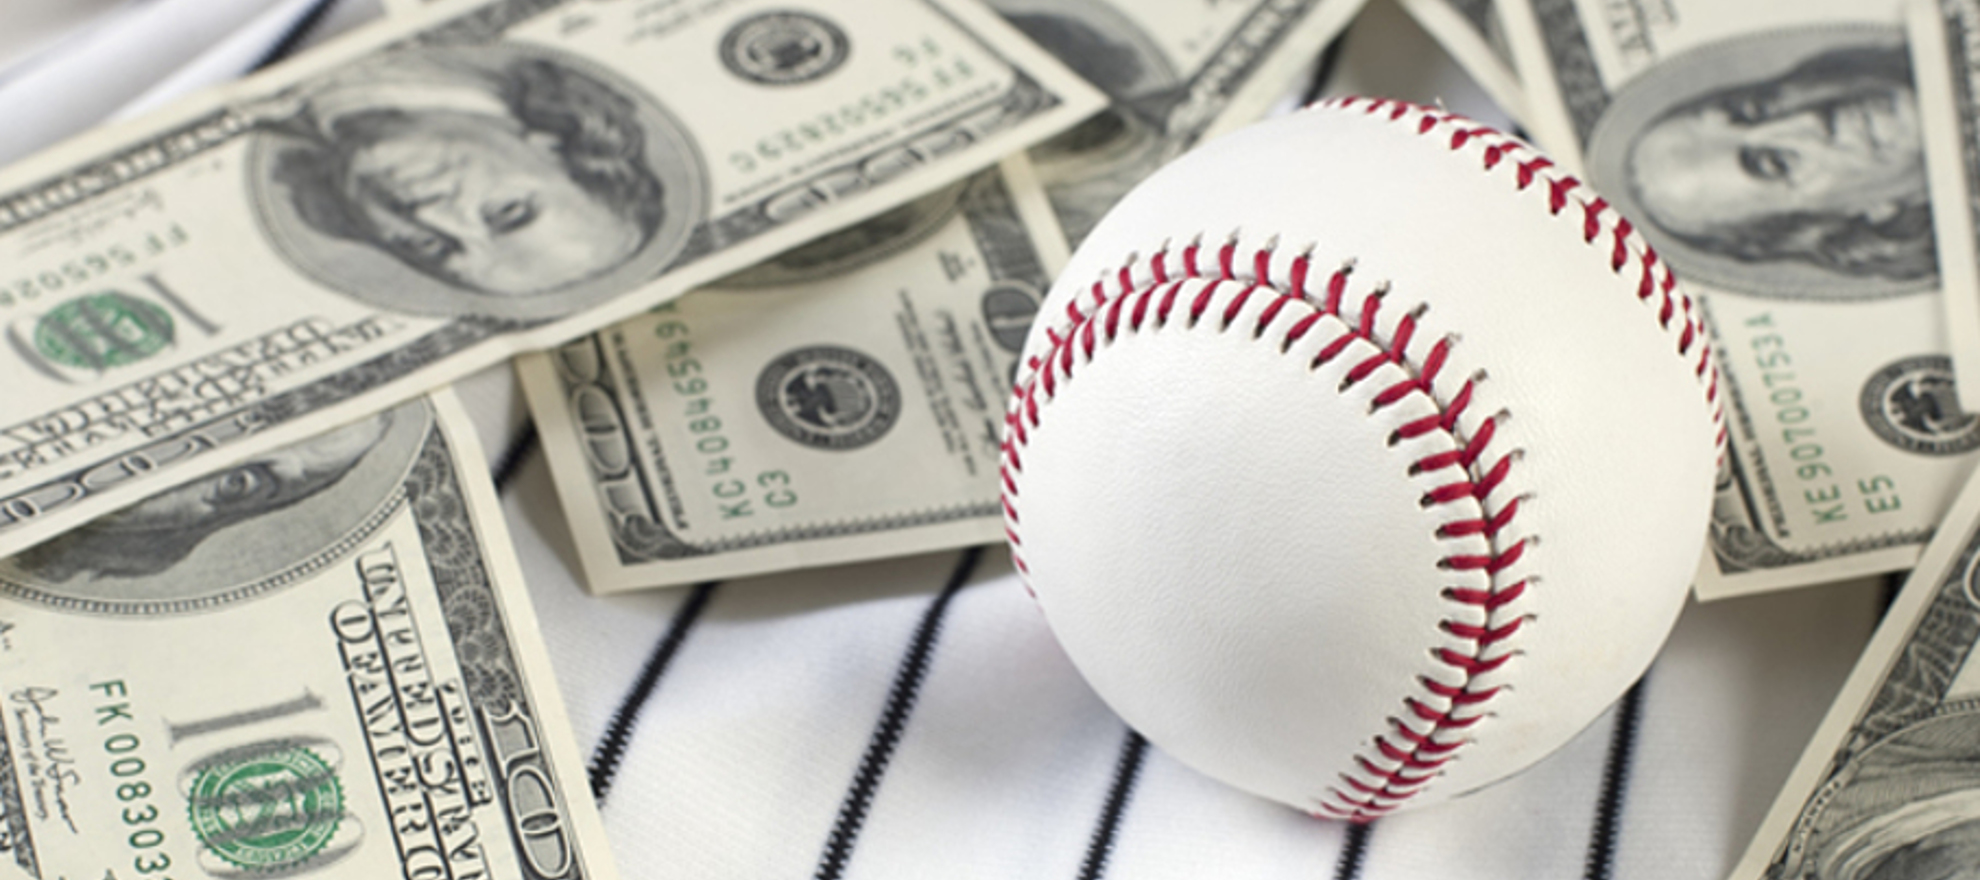 Tips for betting on baseball aim listing requirements mining bitcoins